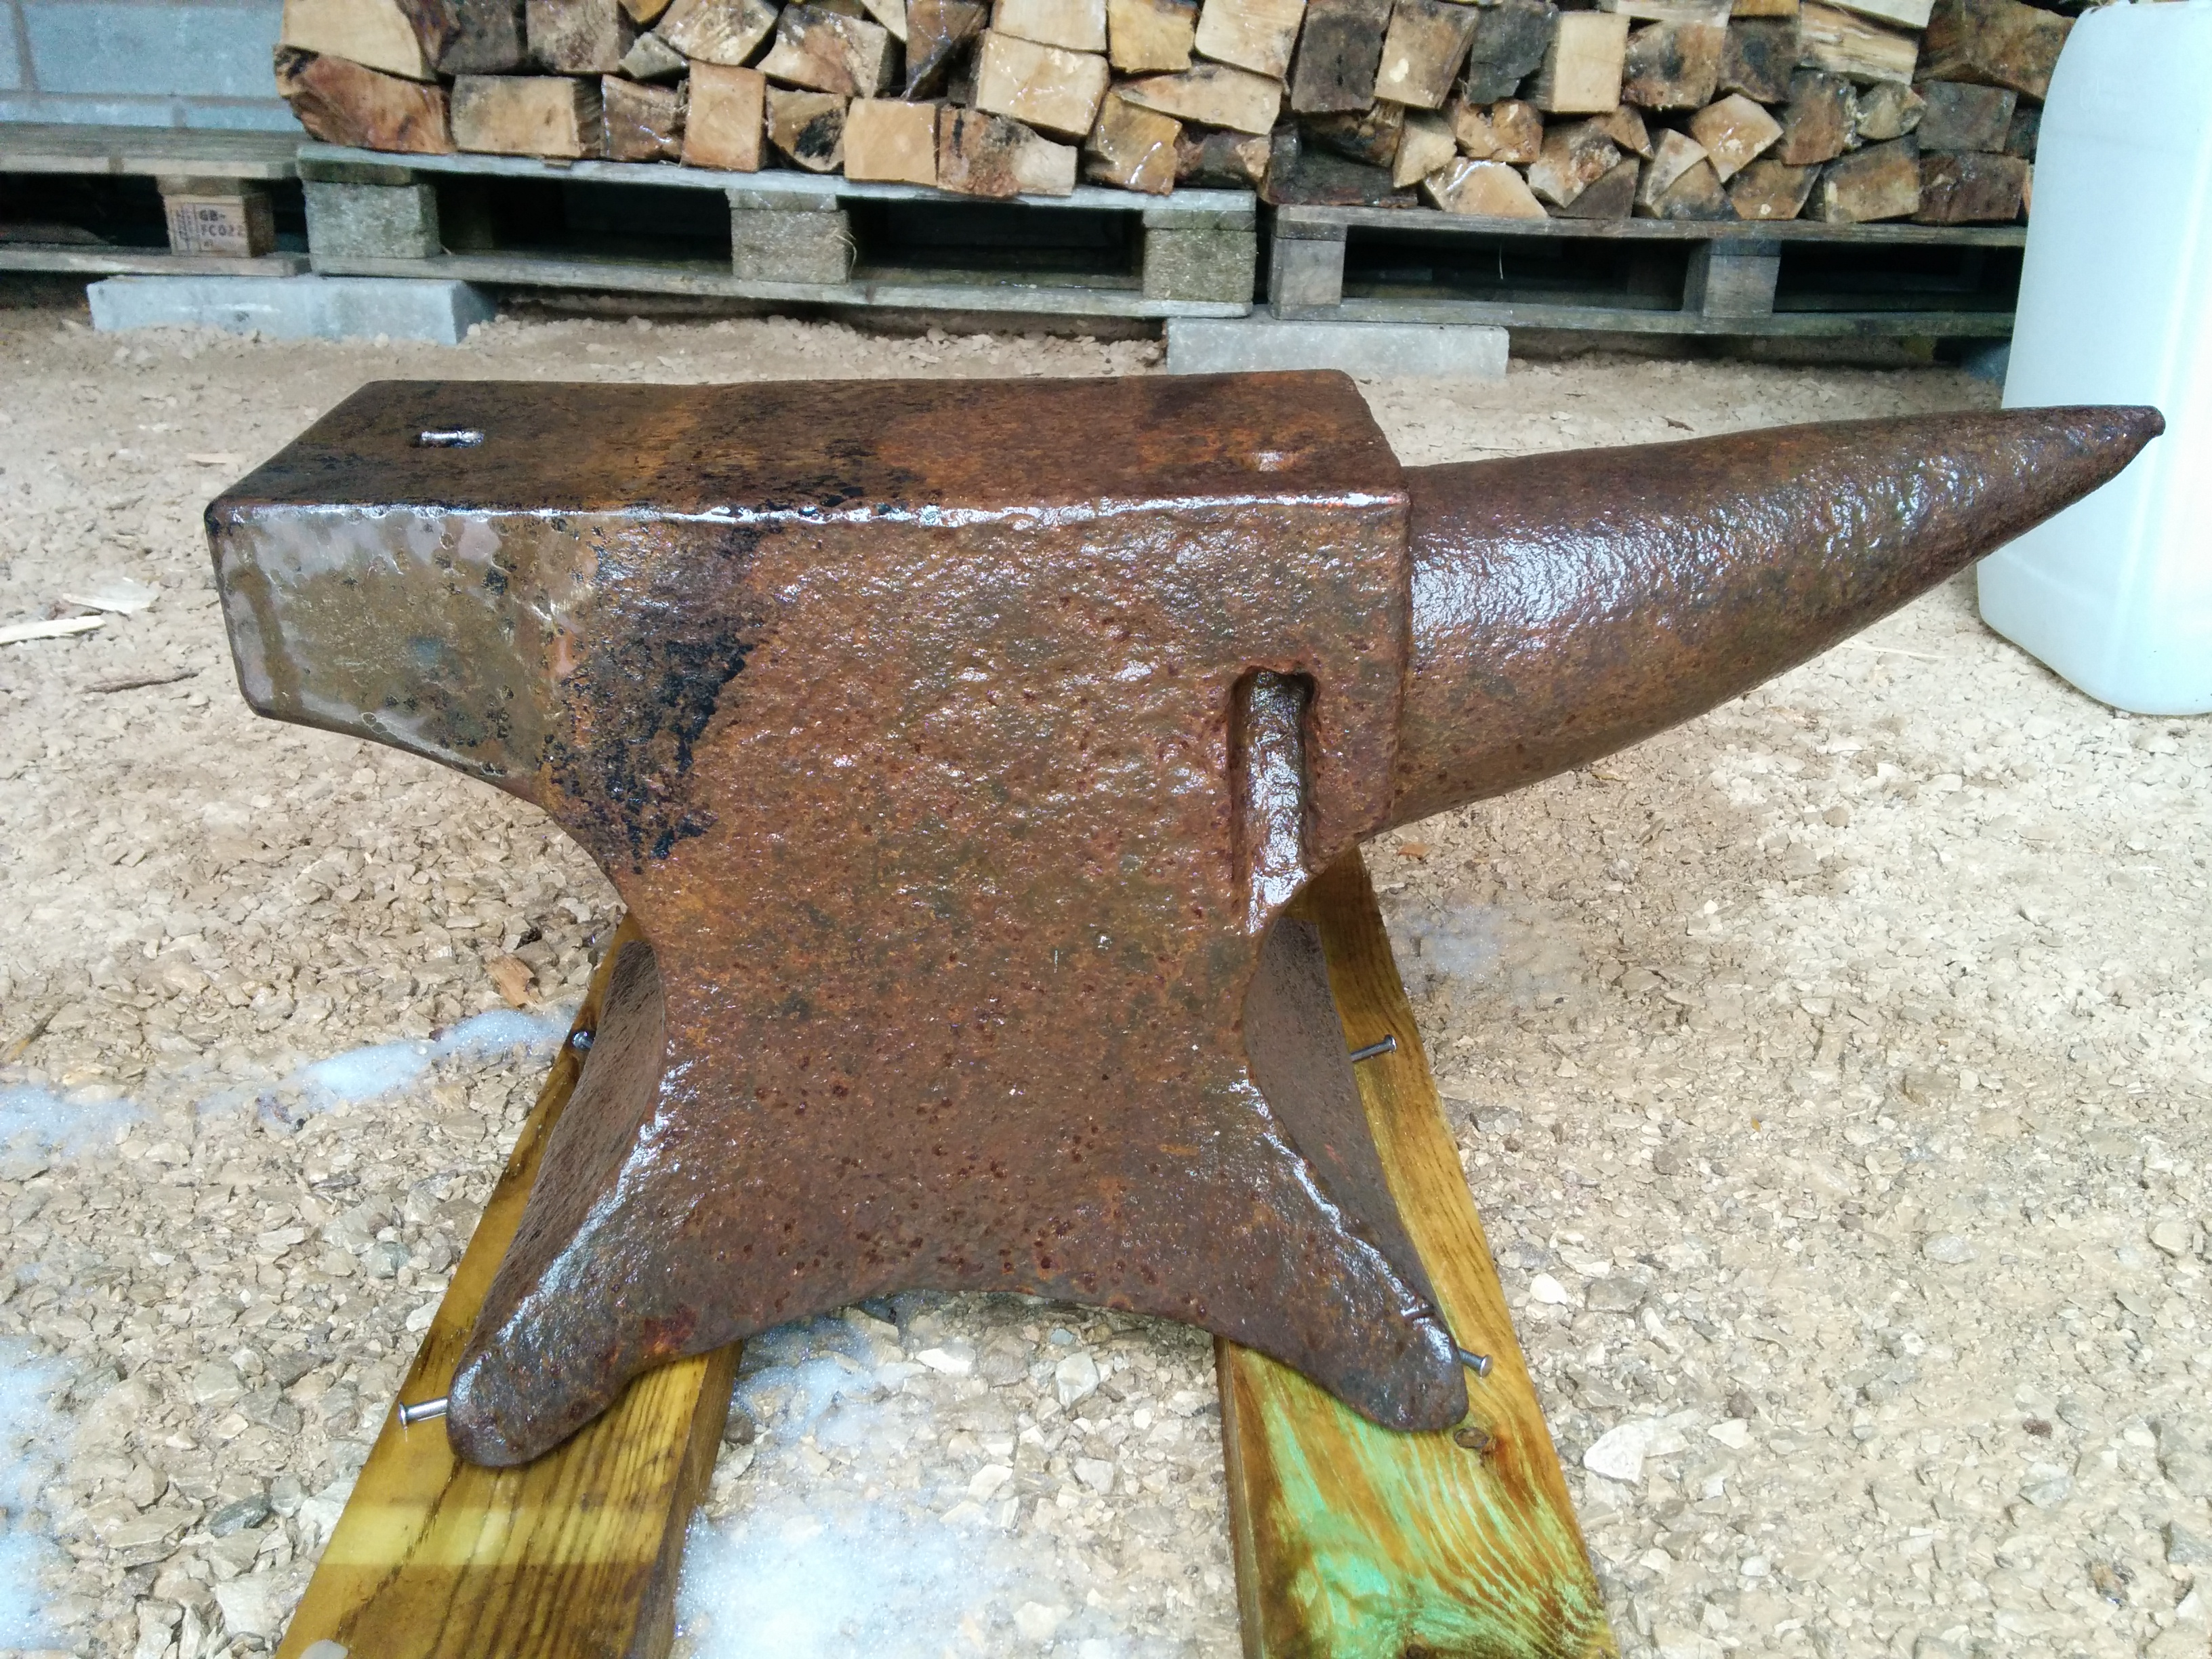 Unusual Anvil Images - Reverse Search